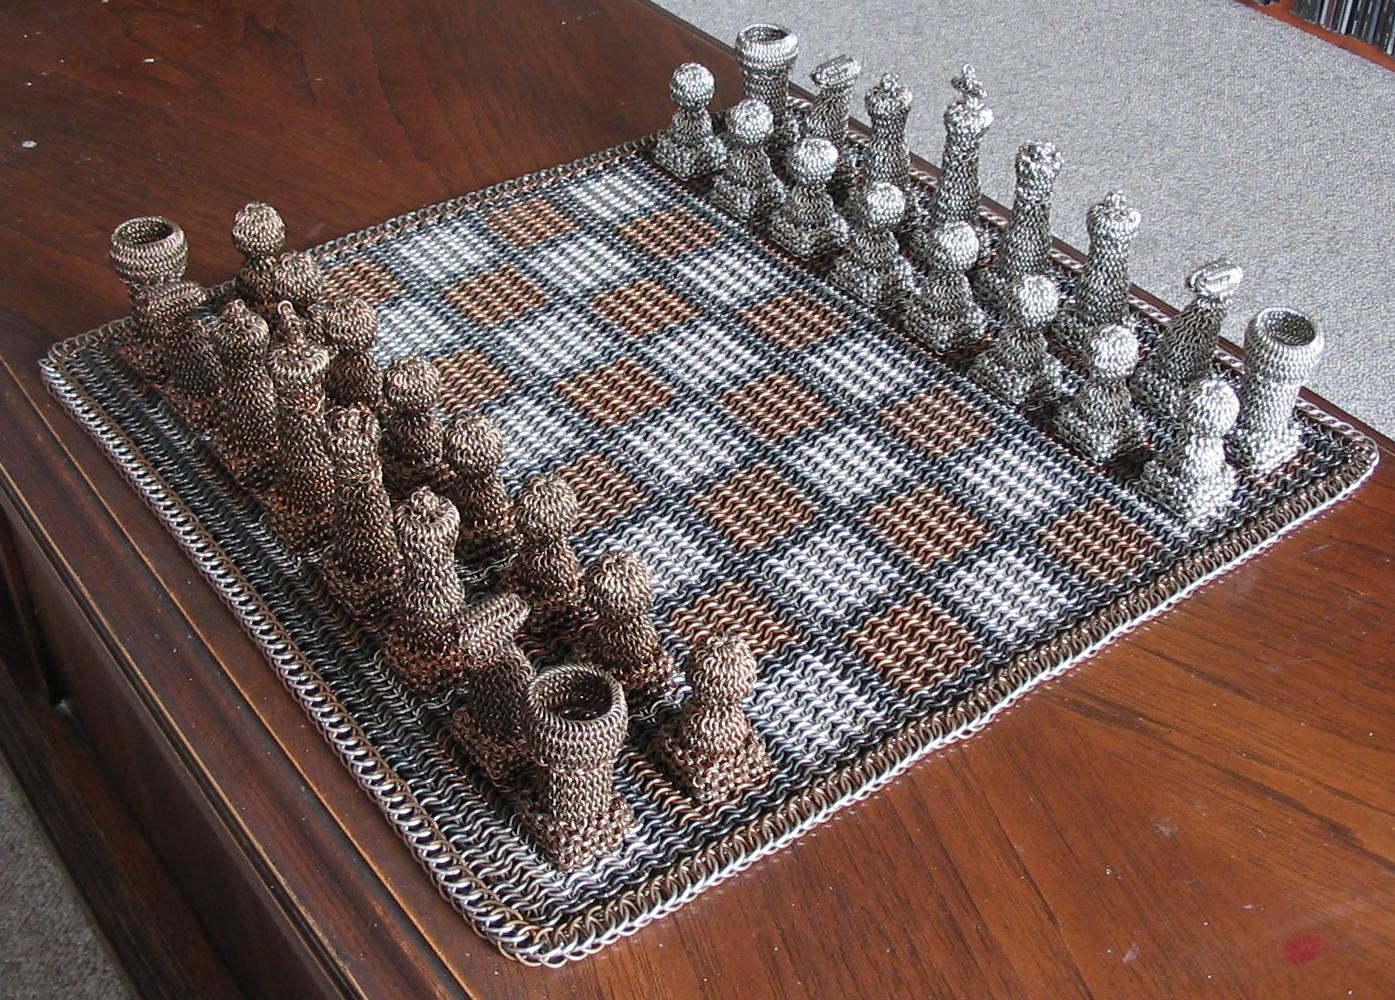 Chest Game Set Chainmail Chess Set Is Suited For Battle Gizmodo Australia